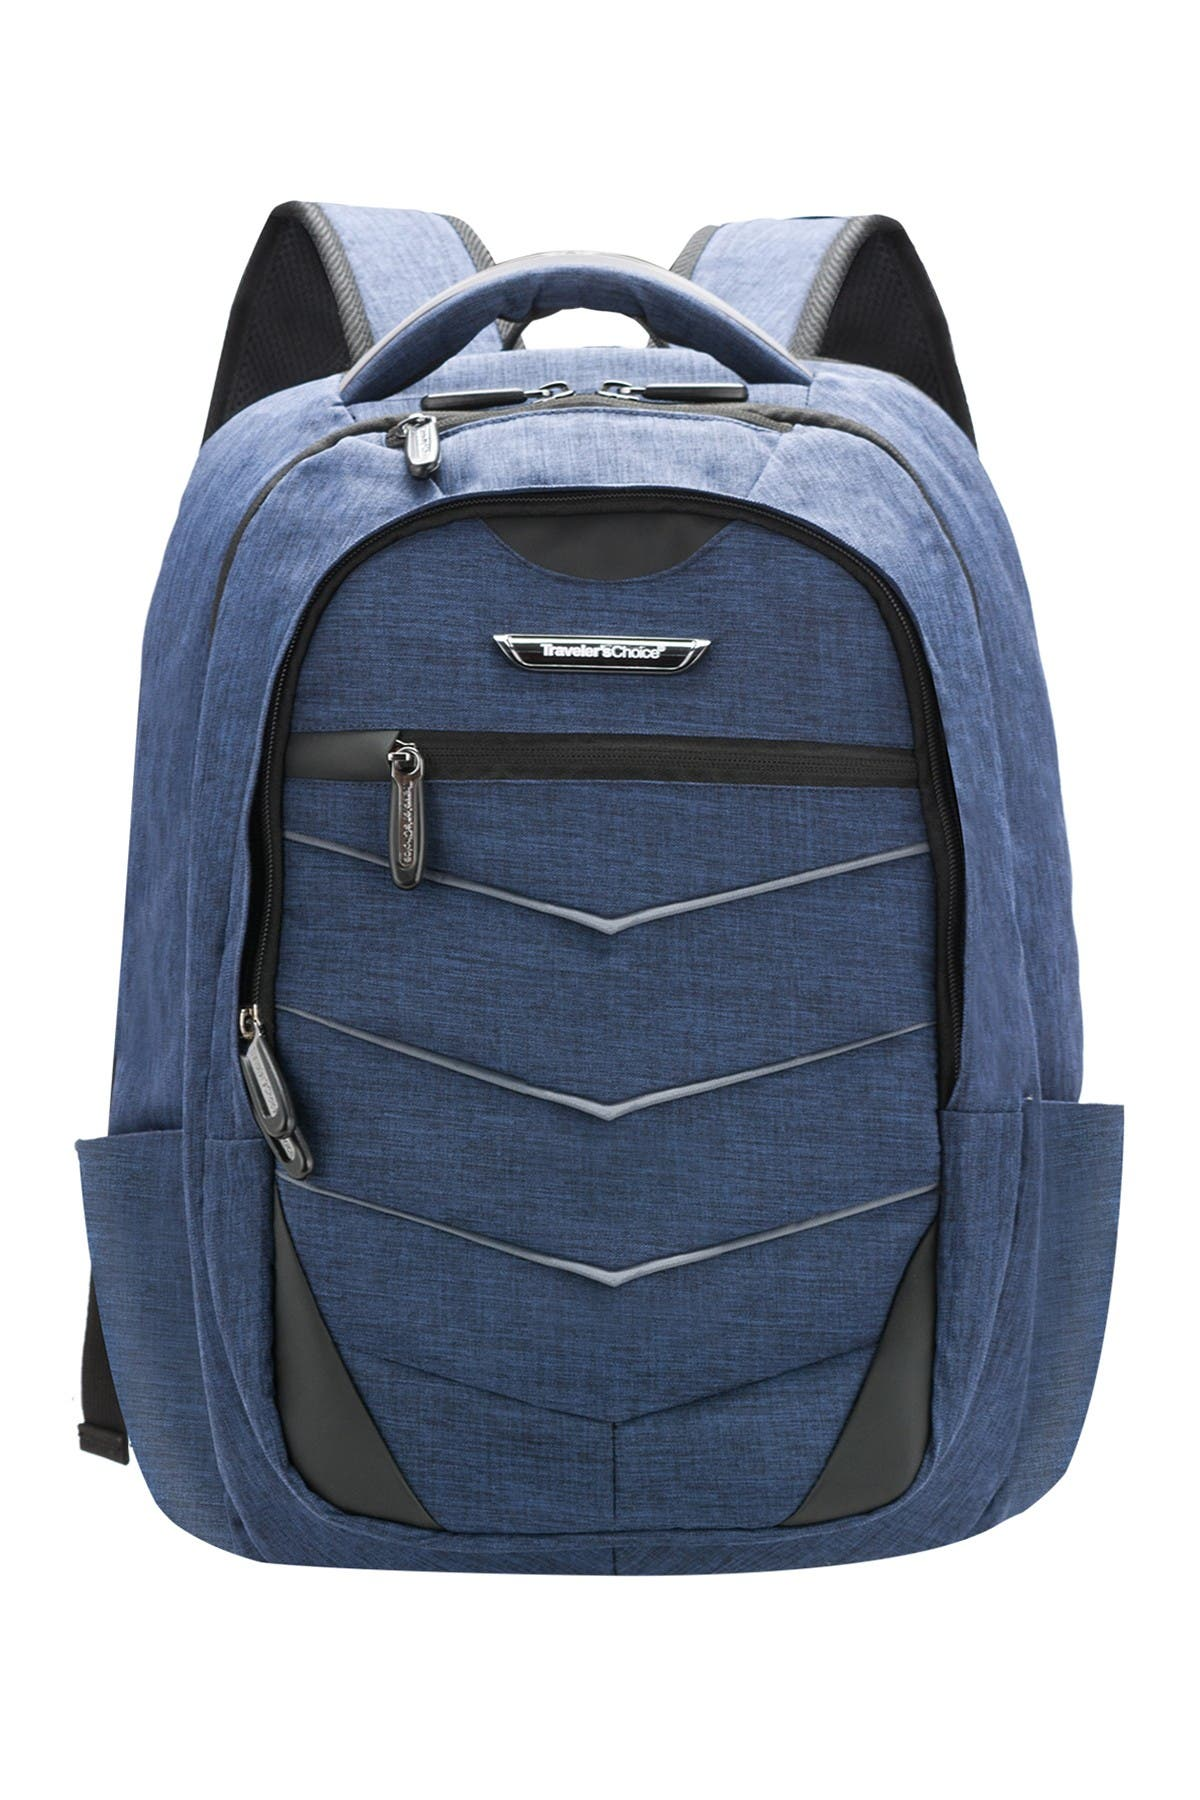 Image of Traveler's Choice Silverwood Computer Backpack